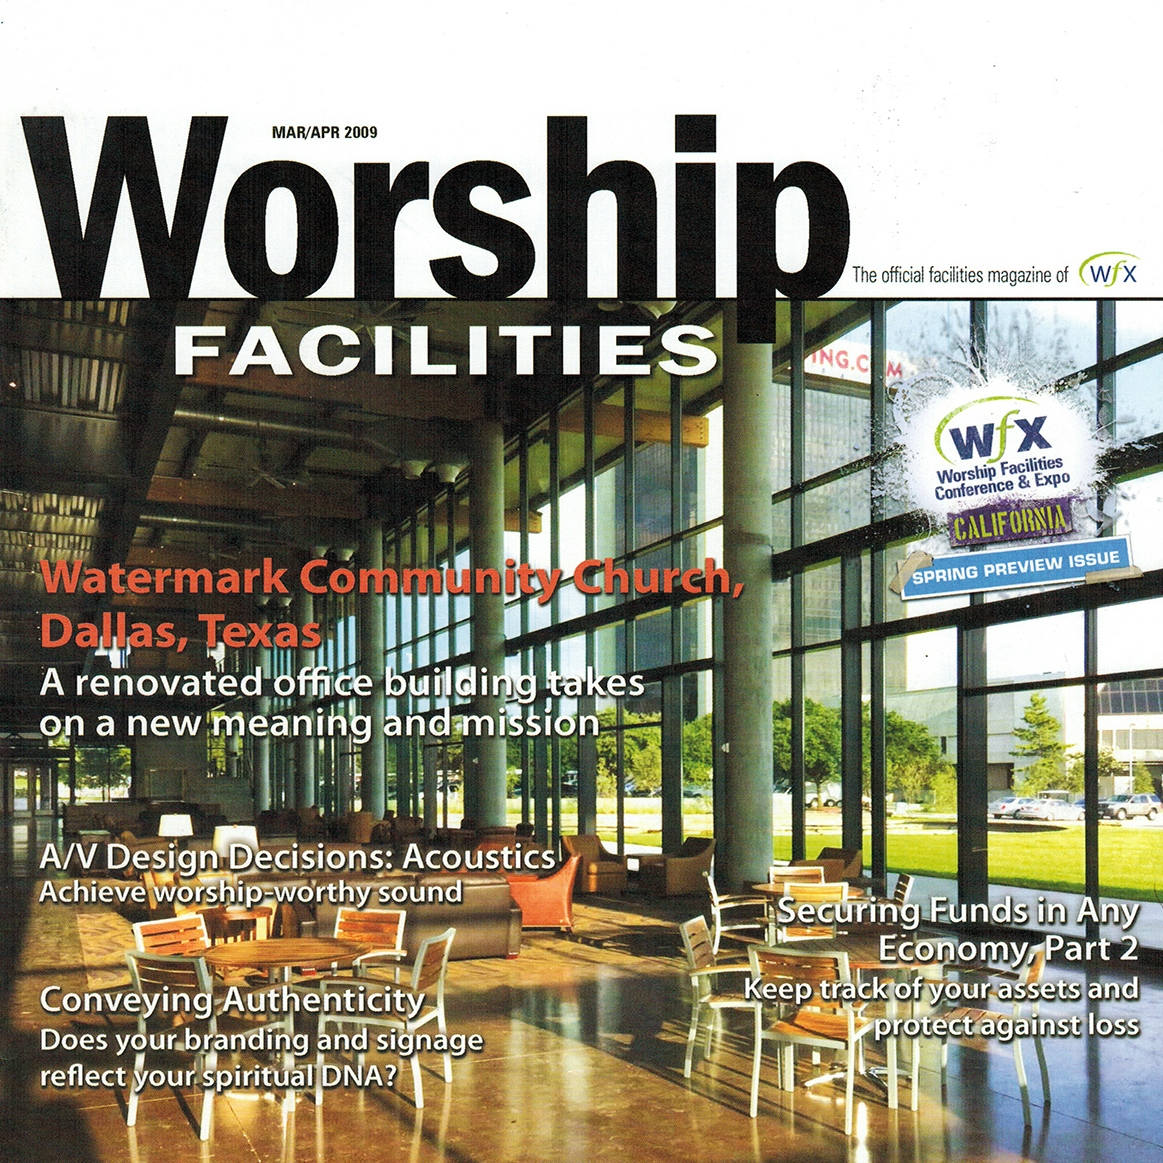 wordship facilities cover.jpg